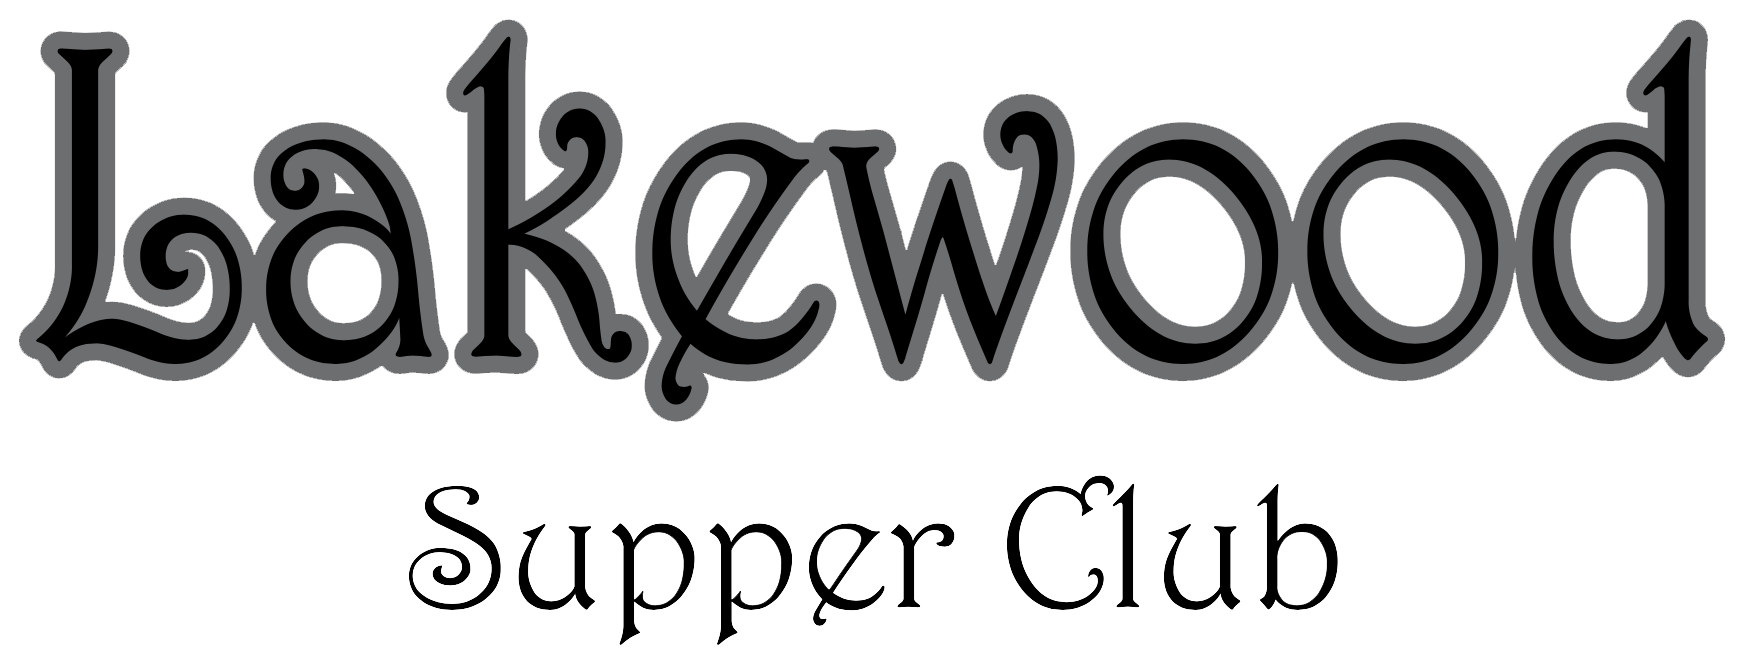 Lakewood Supper Club